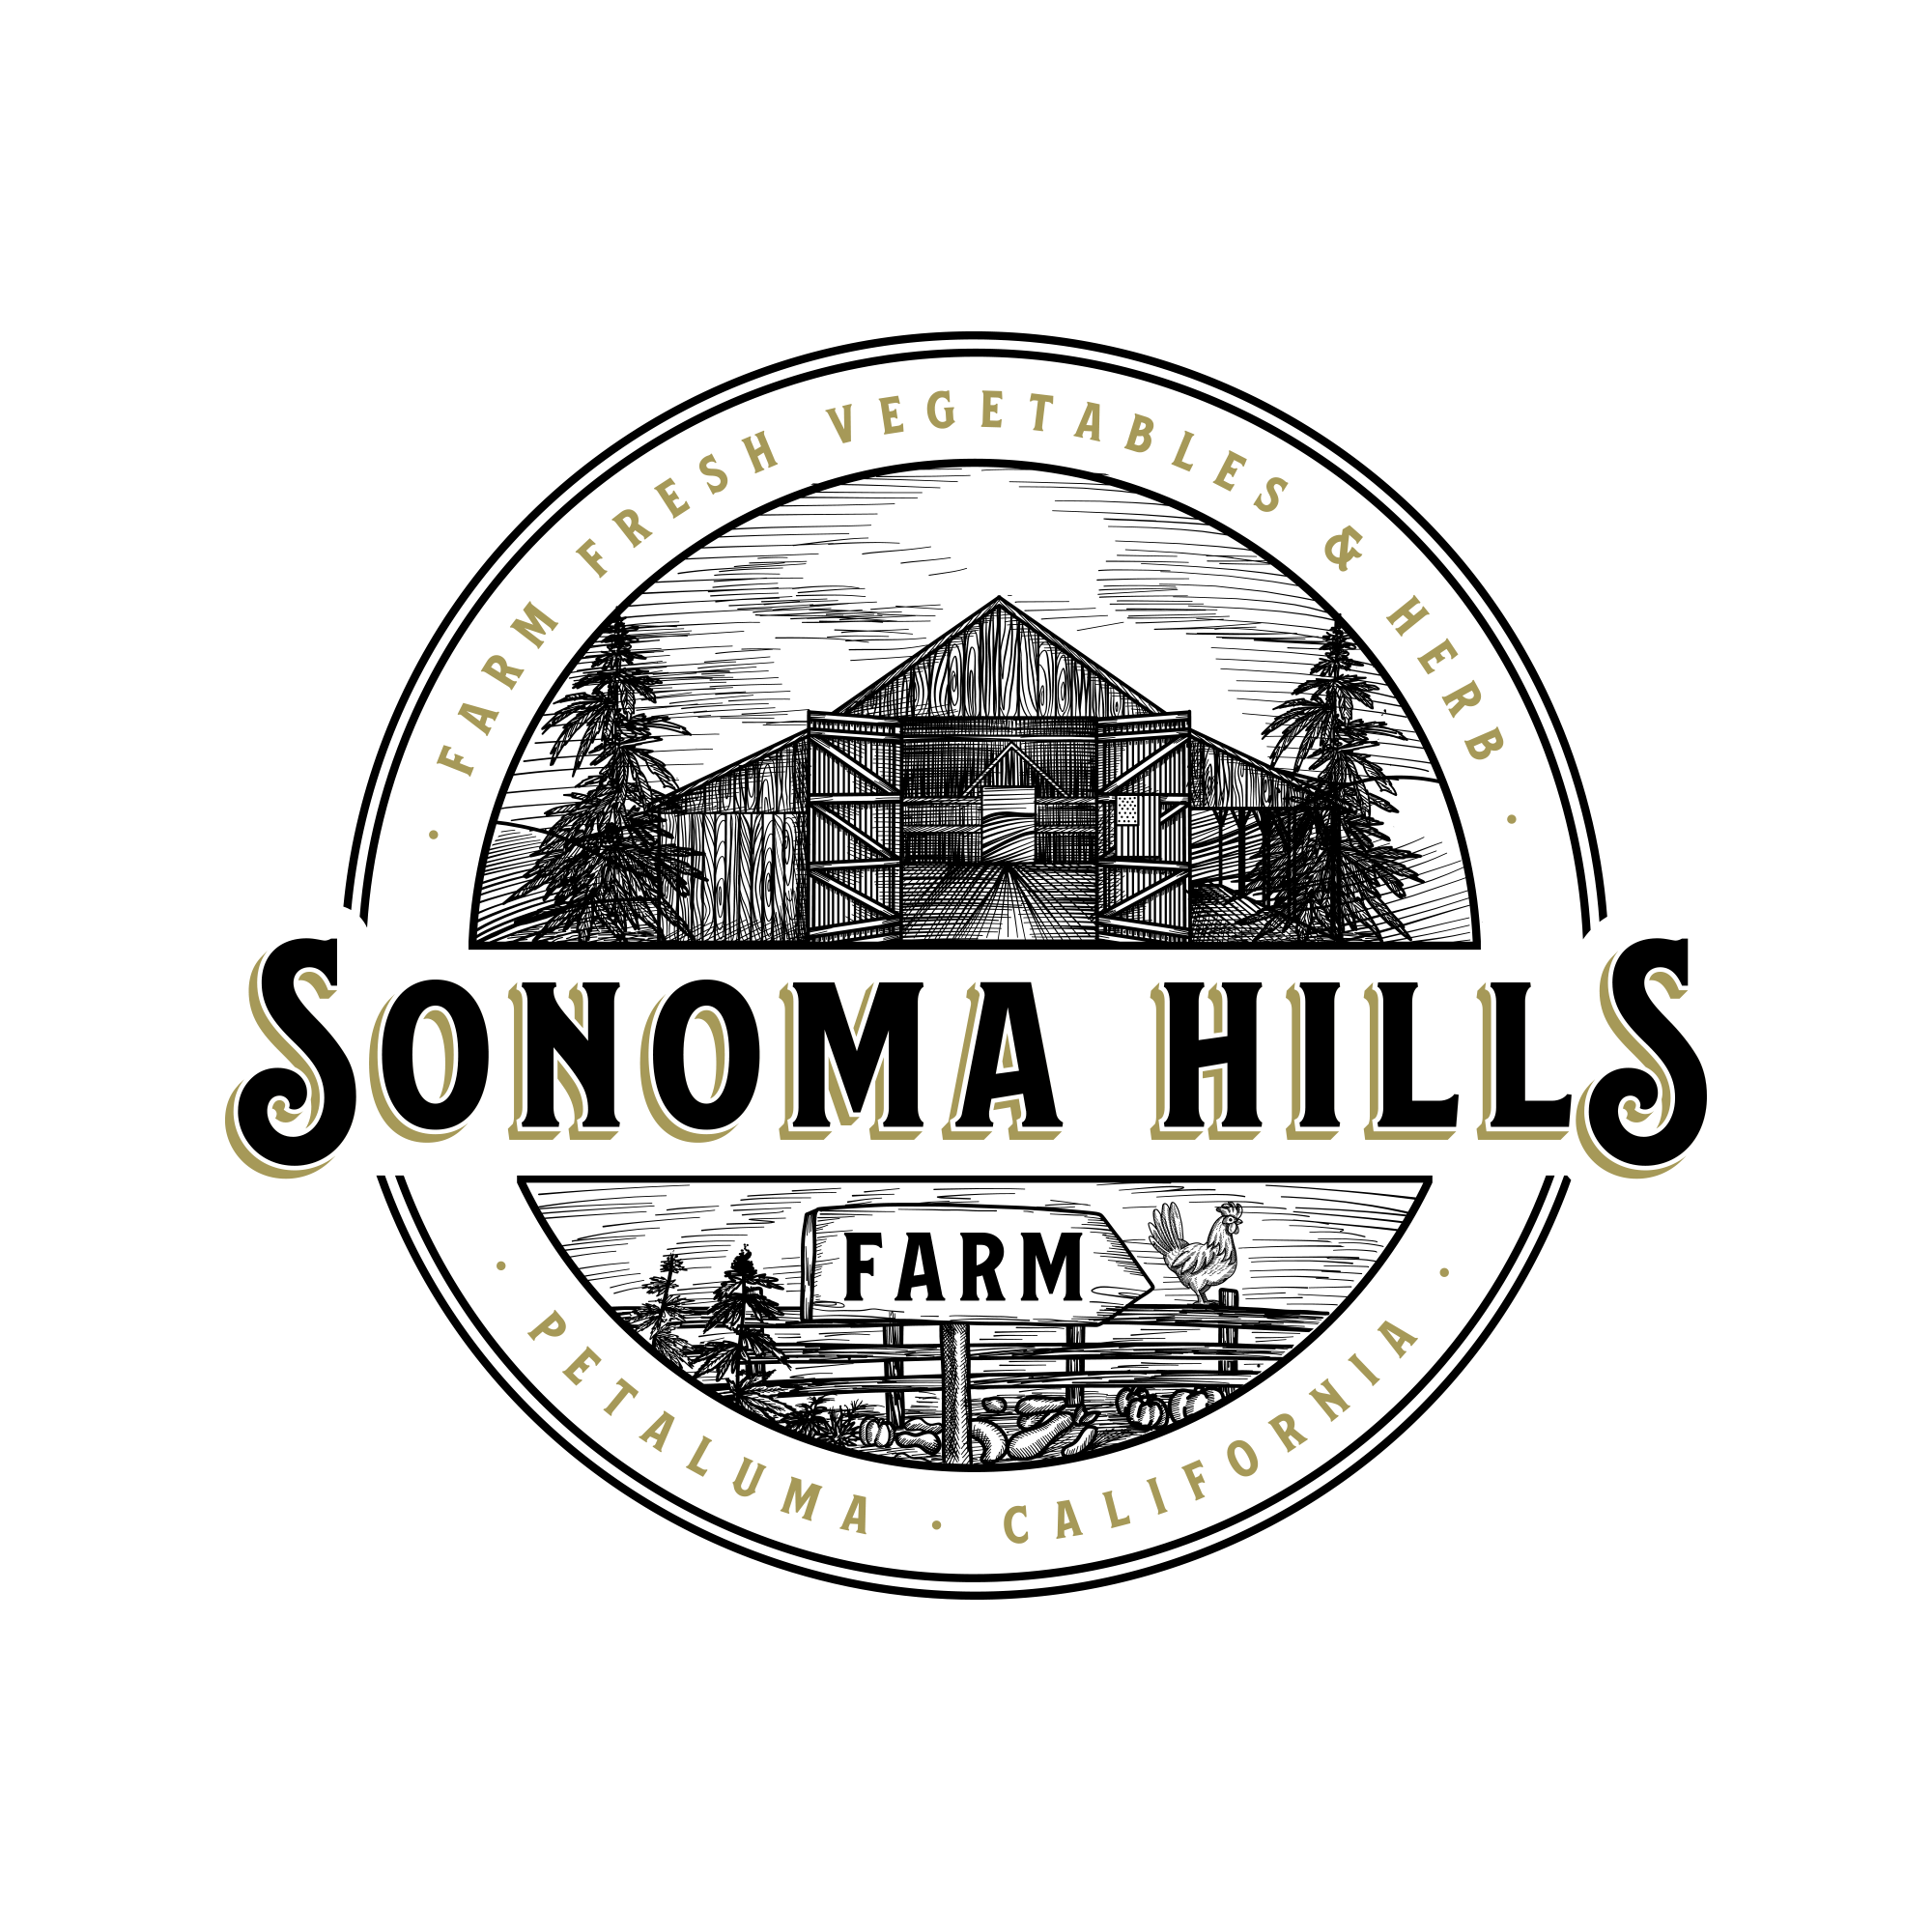 Sonoma Hills Farm Graphics Project